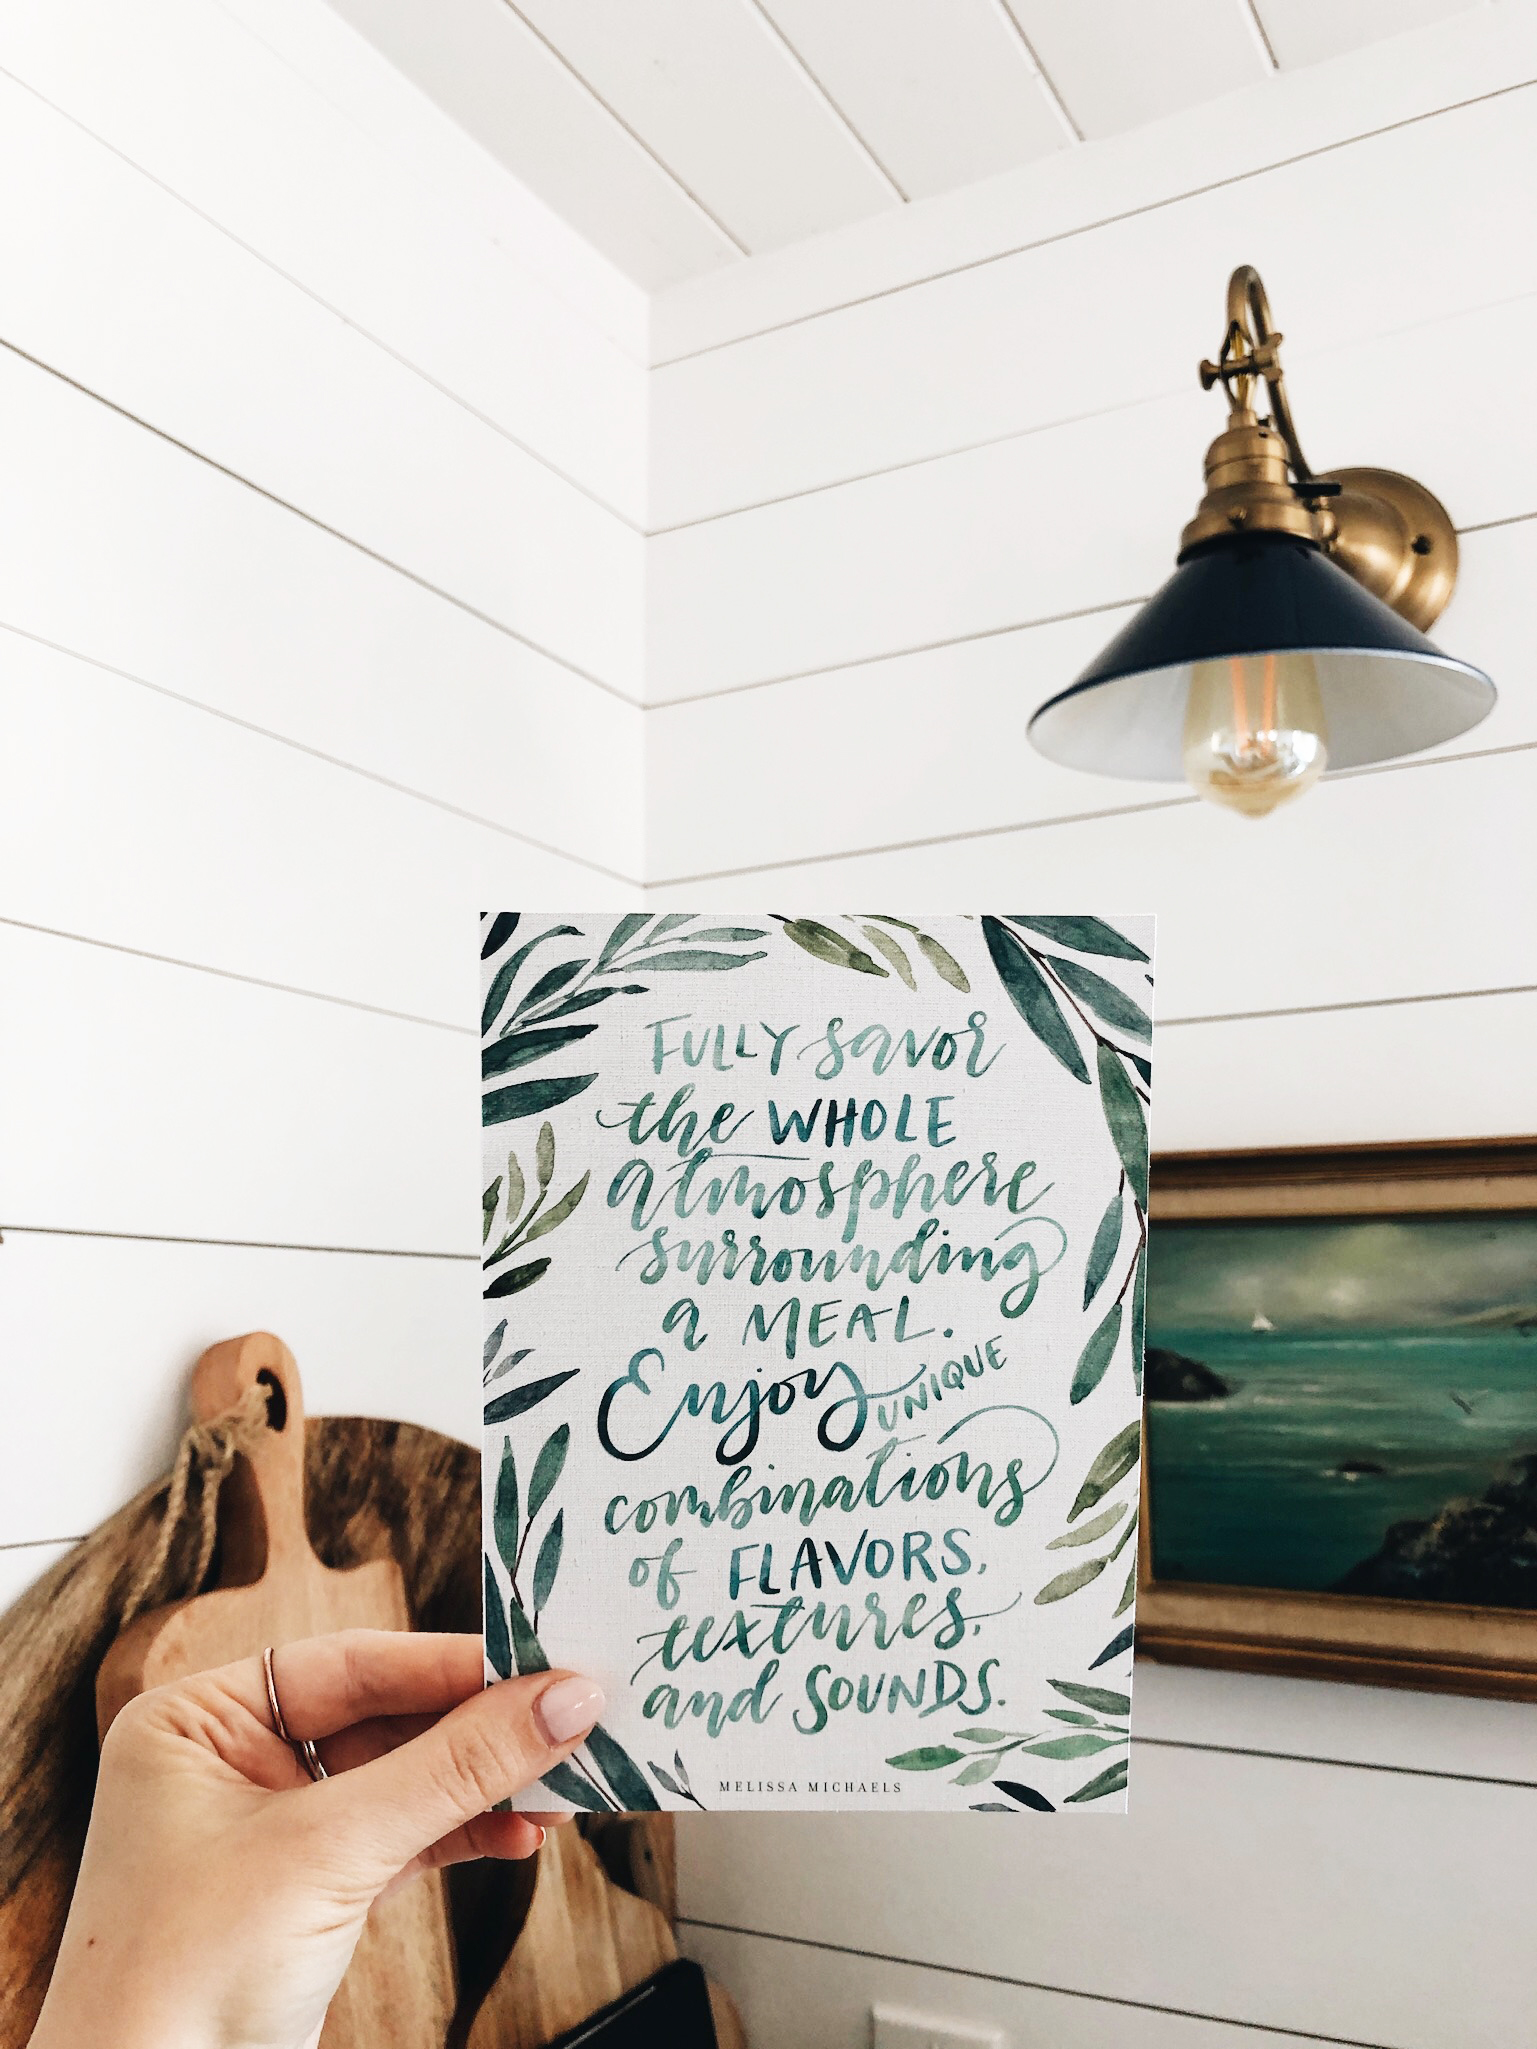 12 Ways to Slow Down & Savor Life + Free Dwelling Art Printables